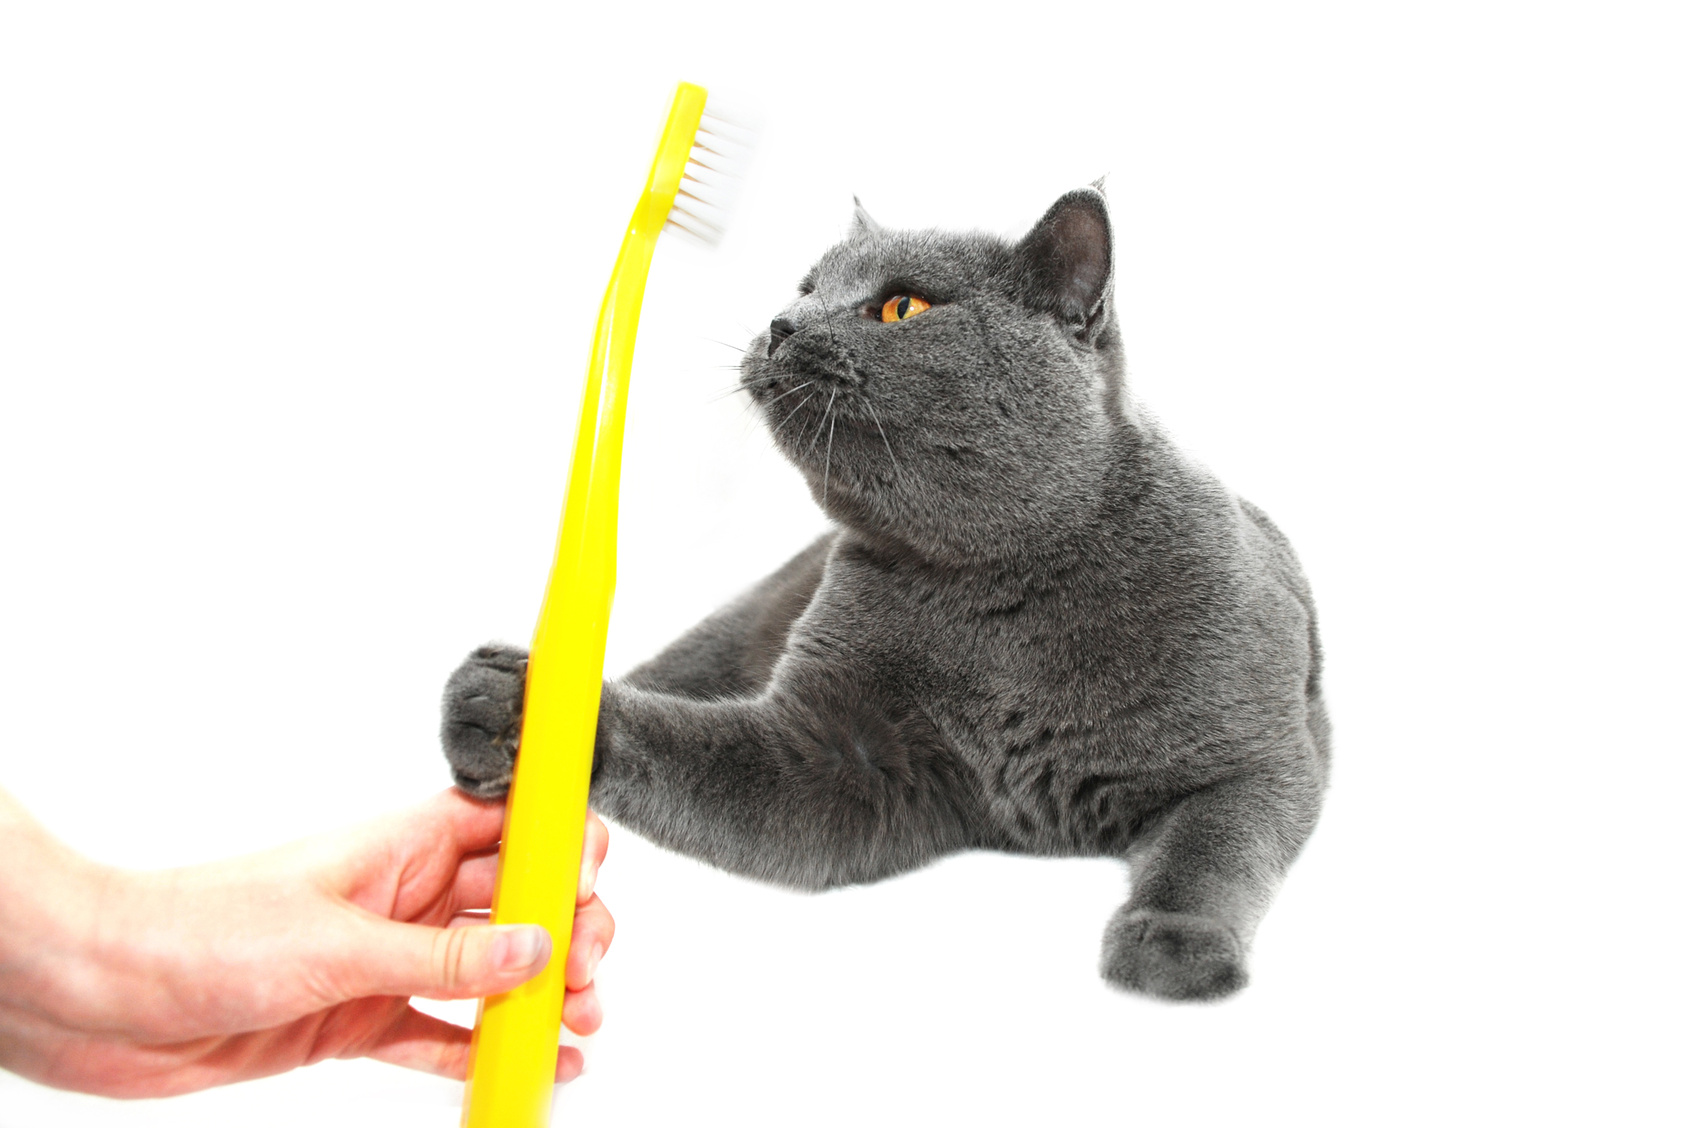 British Shorthair cat, reaching for a toothbrush